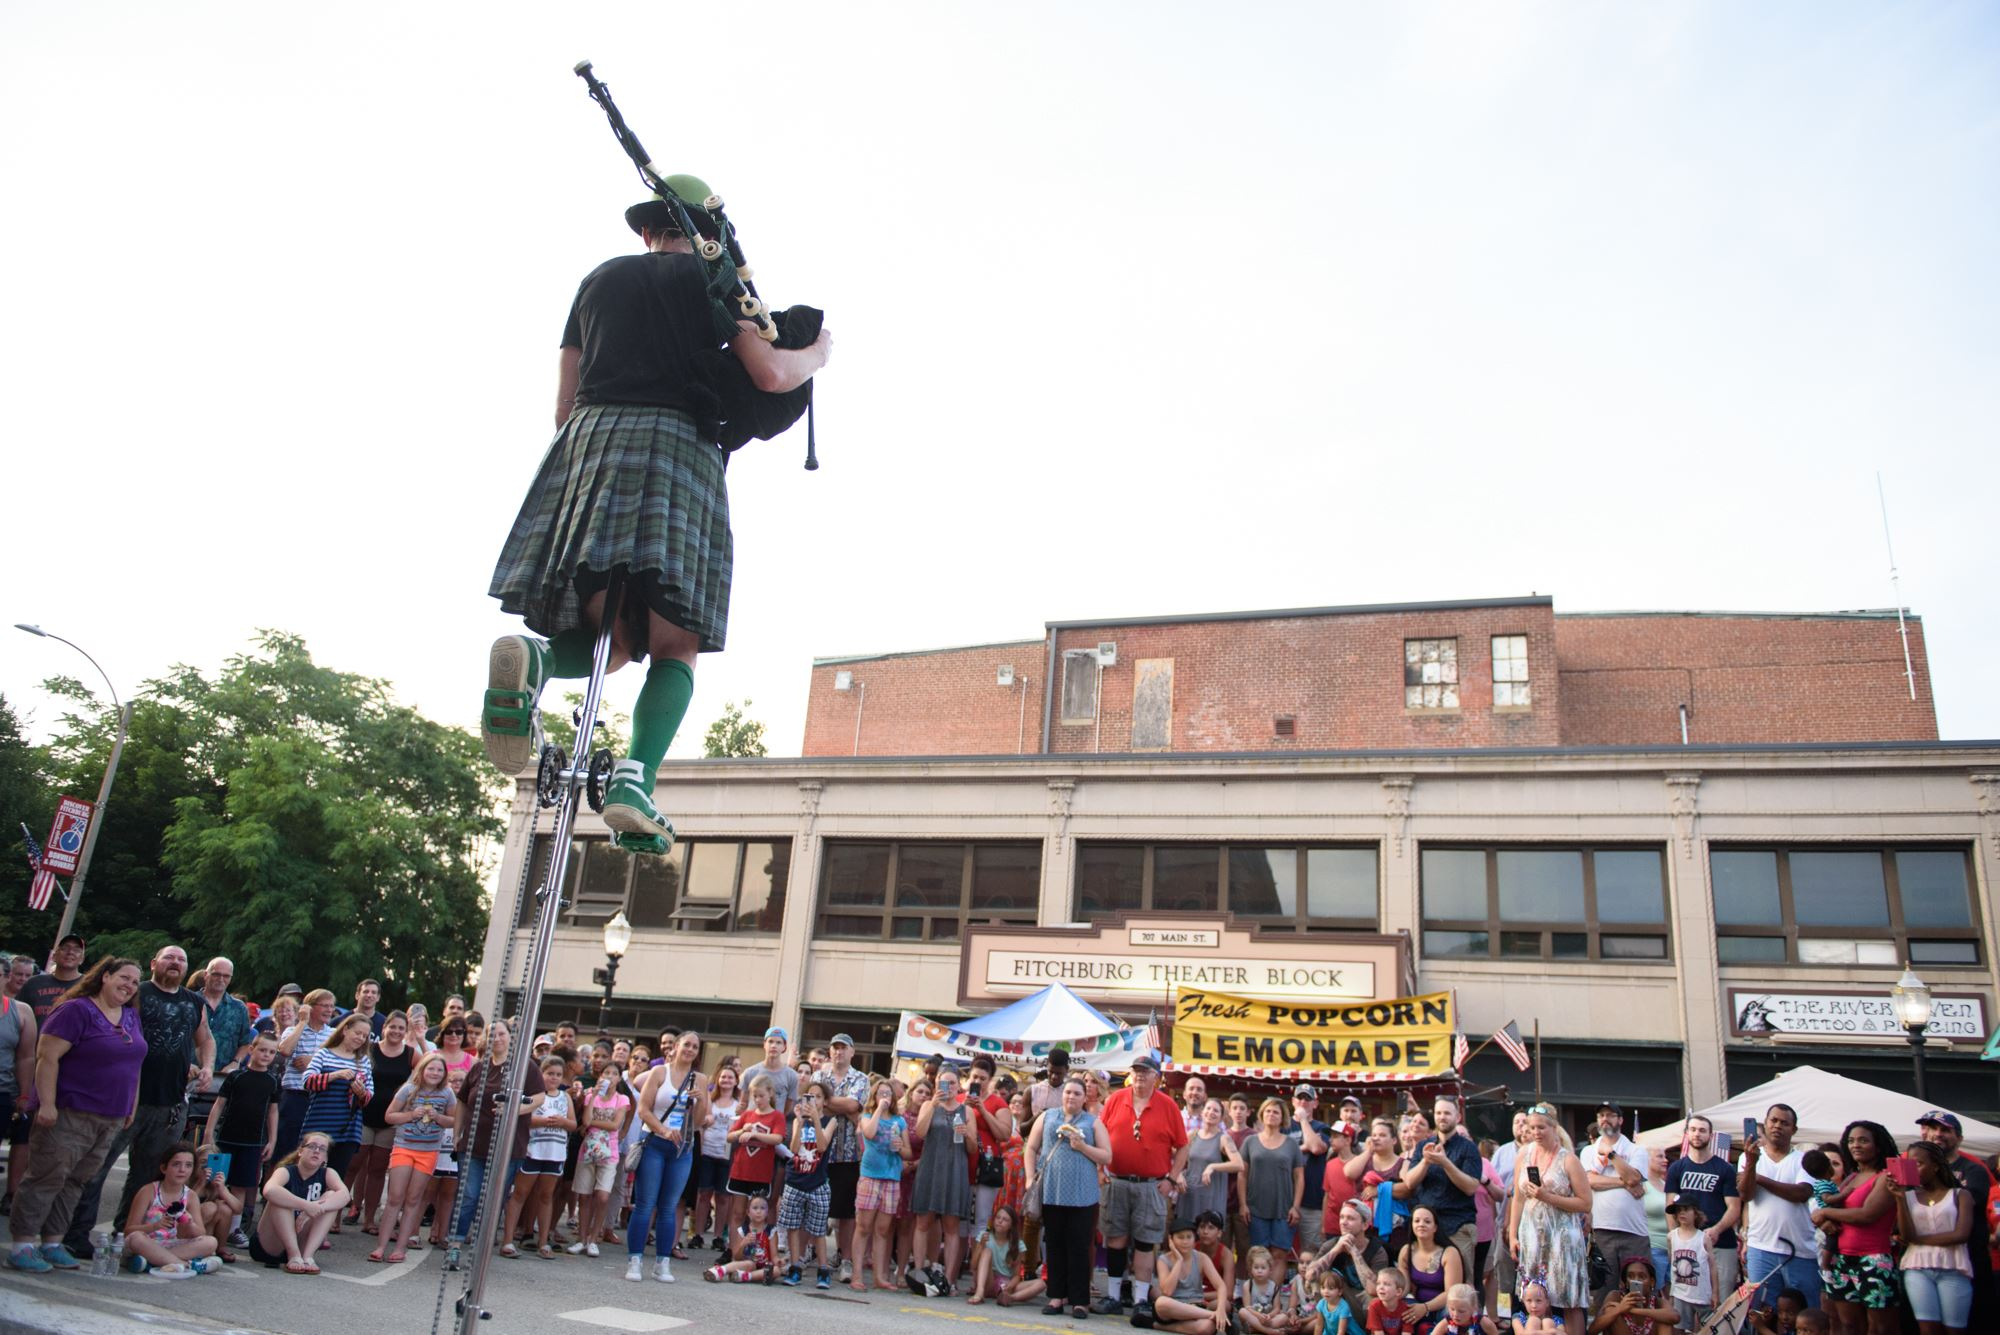 070318_FitchburgCivicDays-80